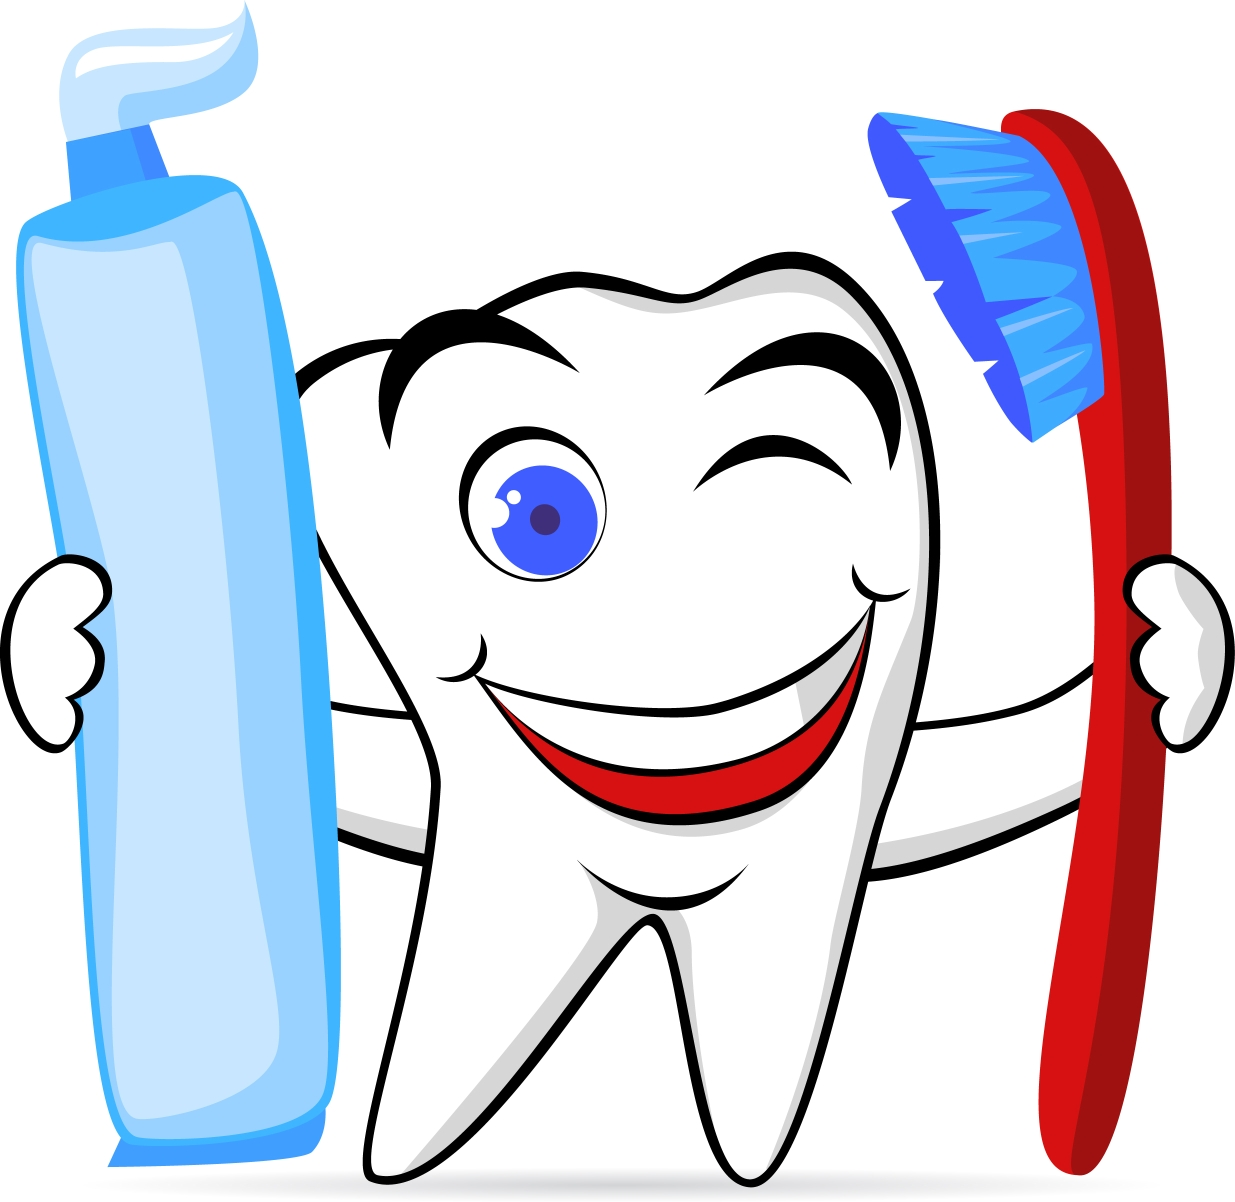 Teeth clipart Kids Clipart of toothbrush collection